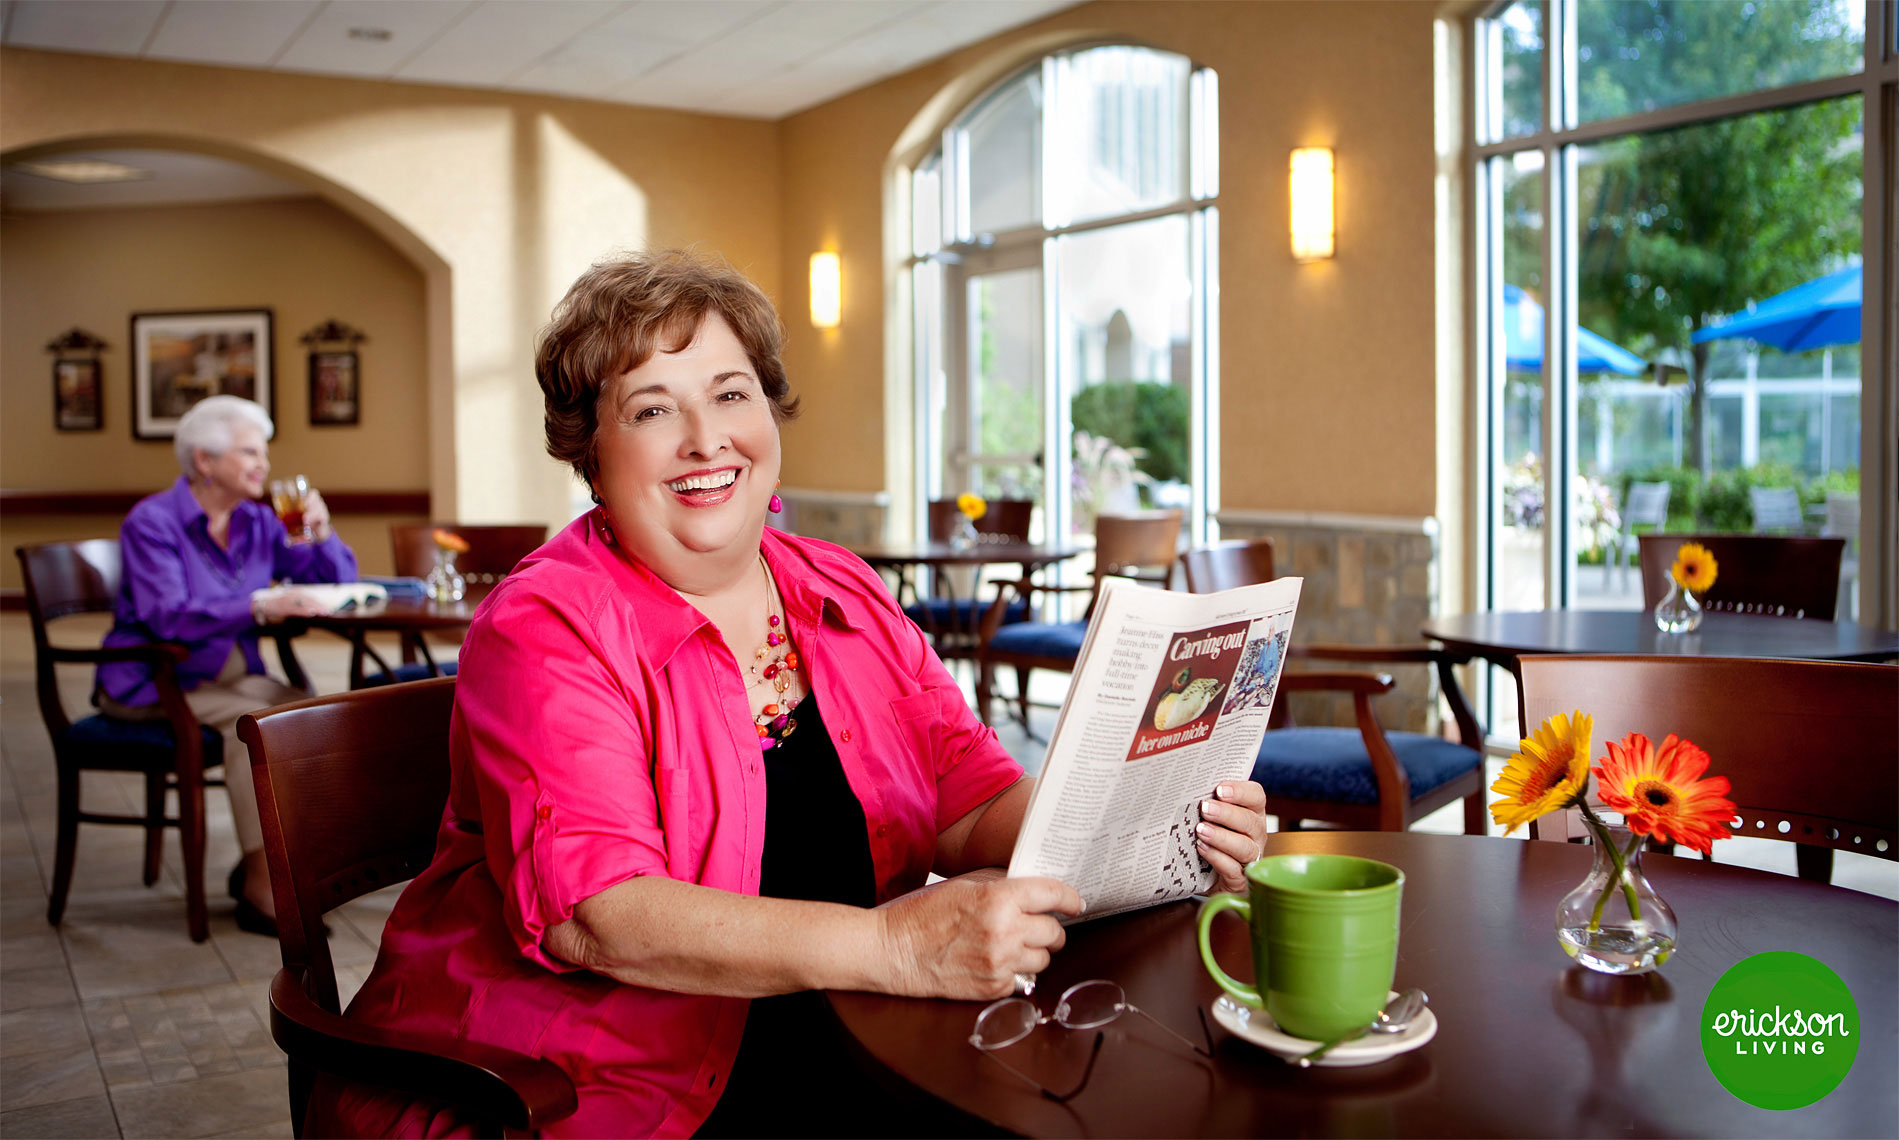 detroit-advertising-portrait-for-tallgrass-senior-living-center-cafe-room-by-commercial-photographer-scott-stewart